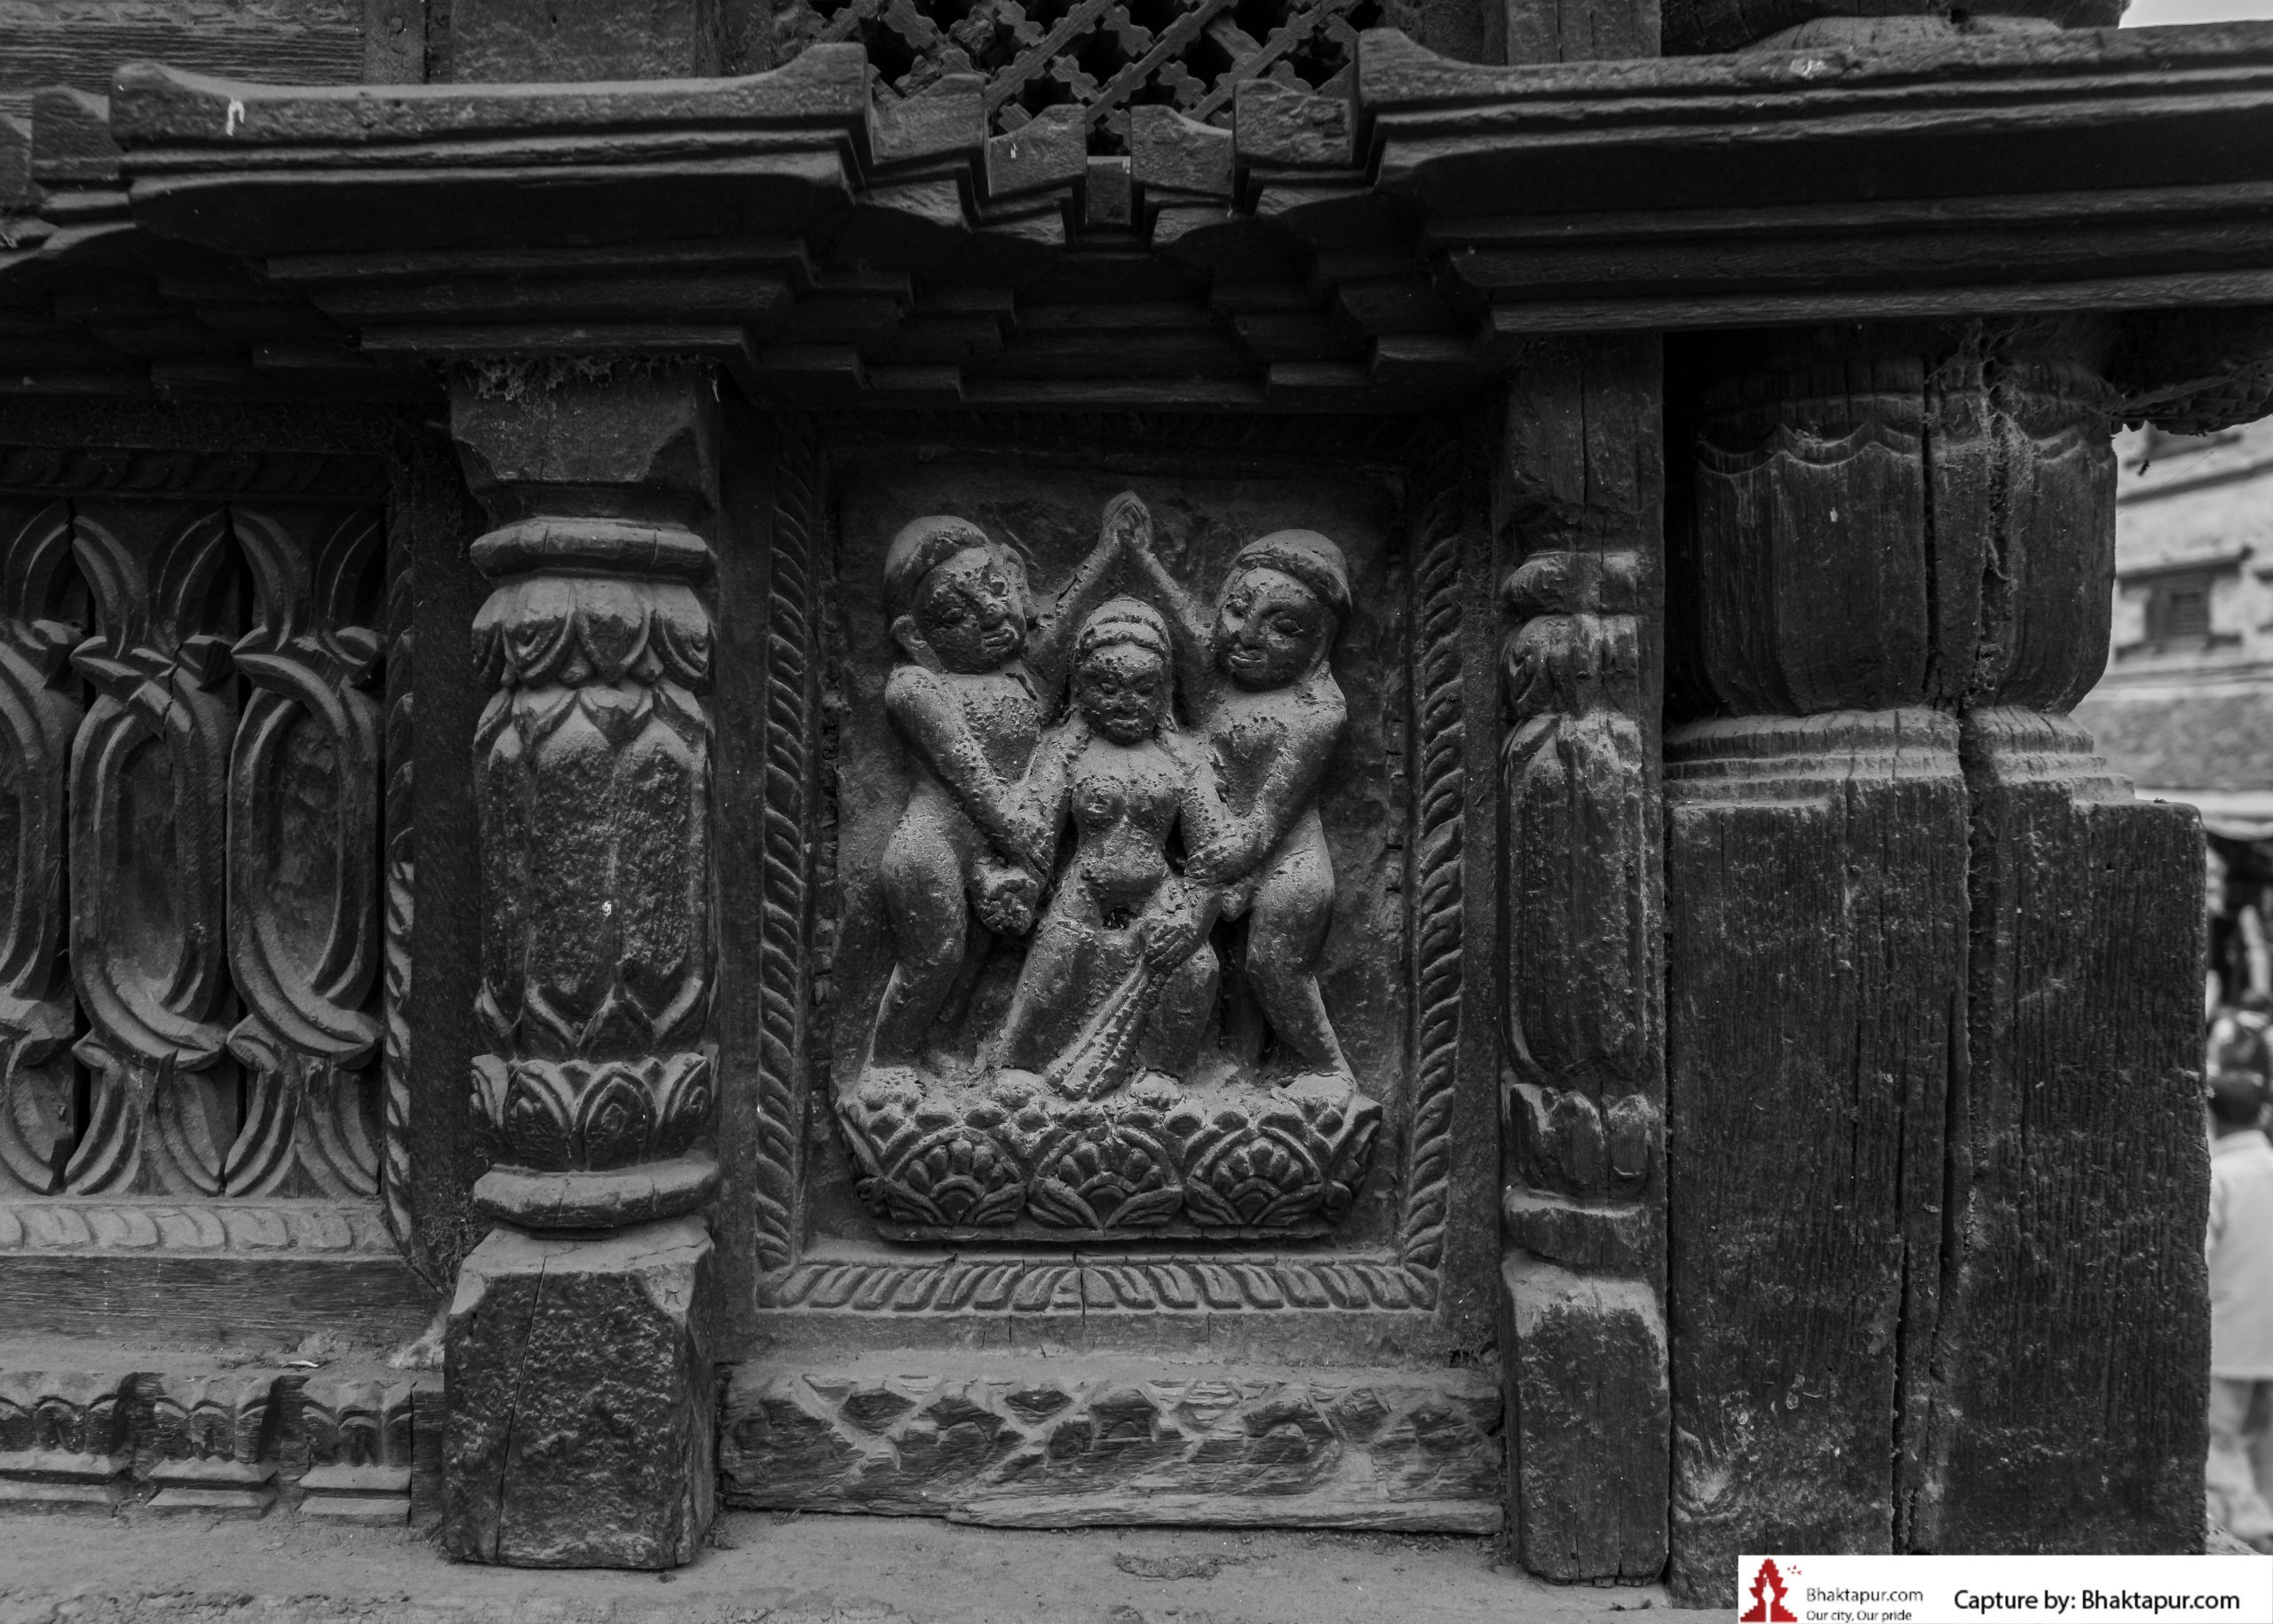 https://www.bhaktapur.com/wp-content/uploads/2021/08/erotic-carving-12-of-137-scaled.jpg